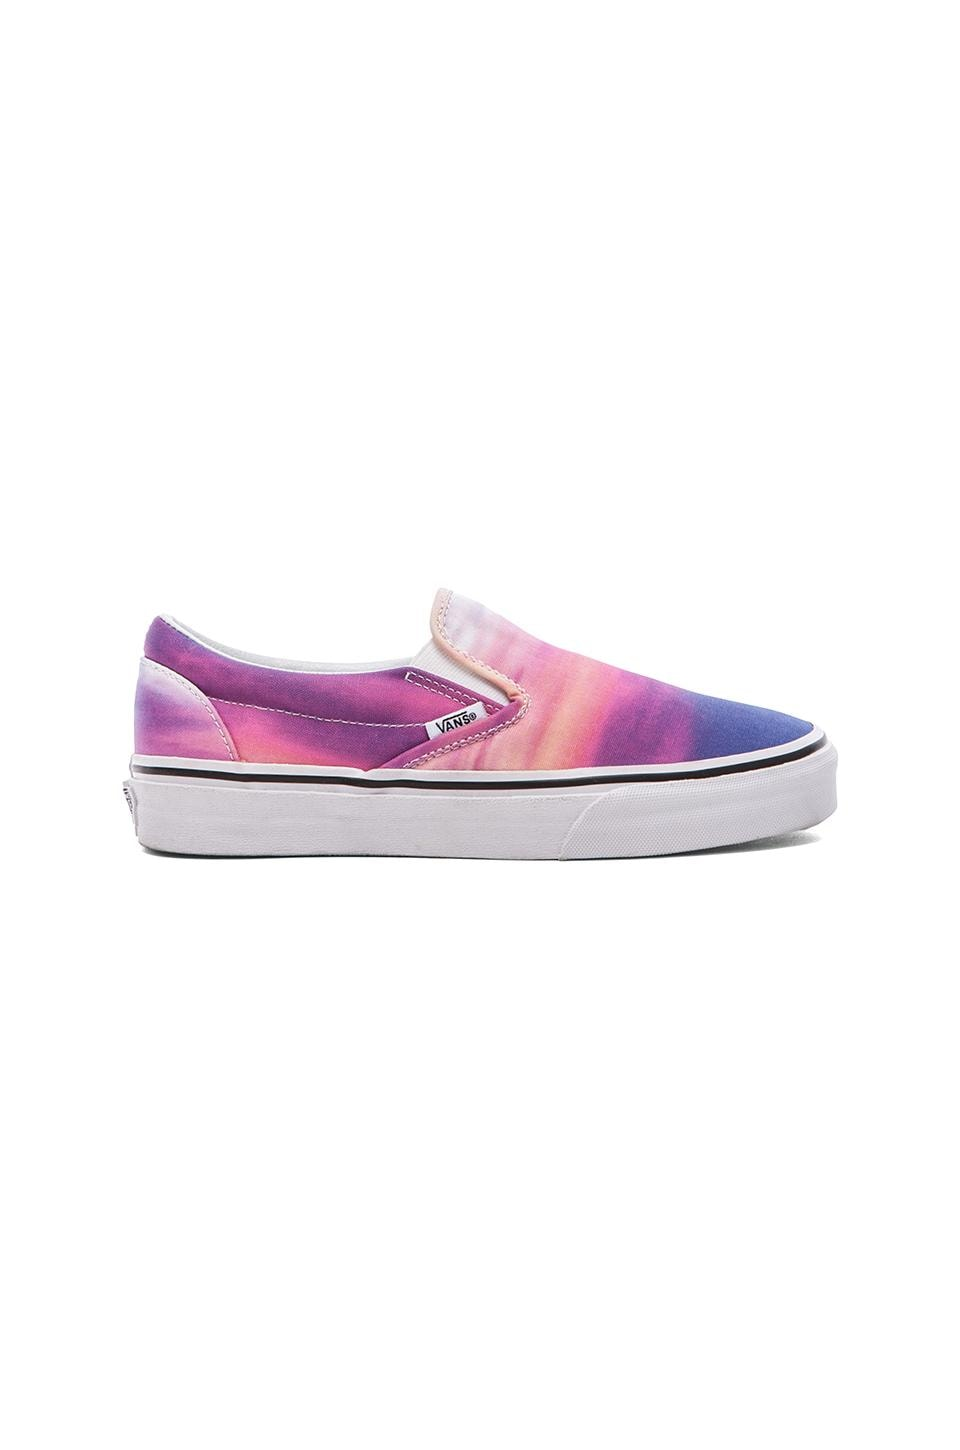 Vans Classic Slip-On in Purple Sunset